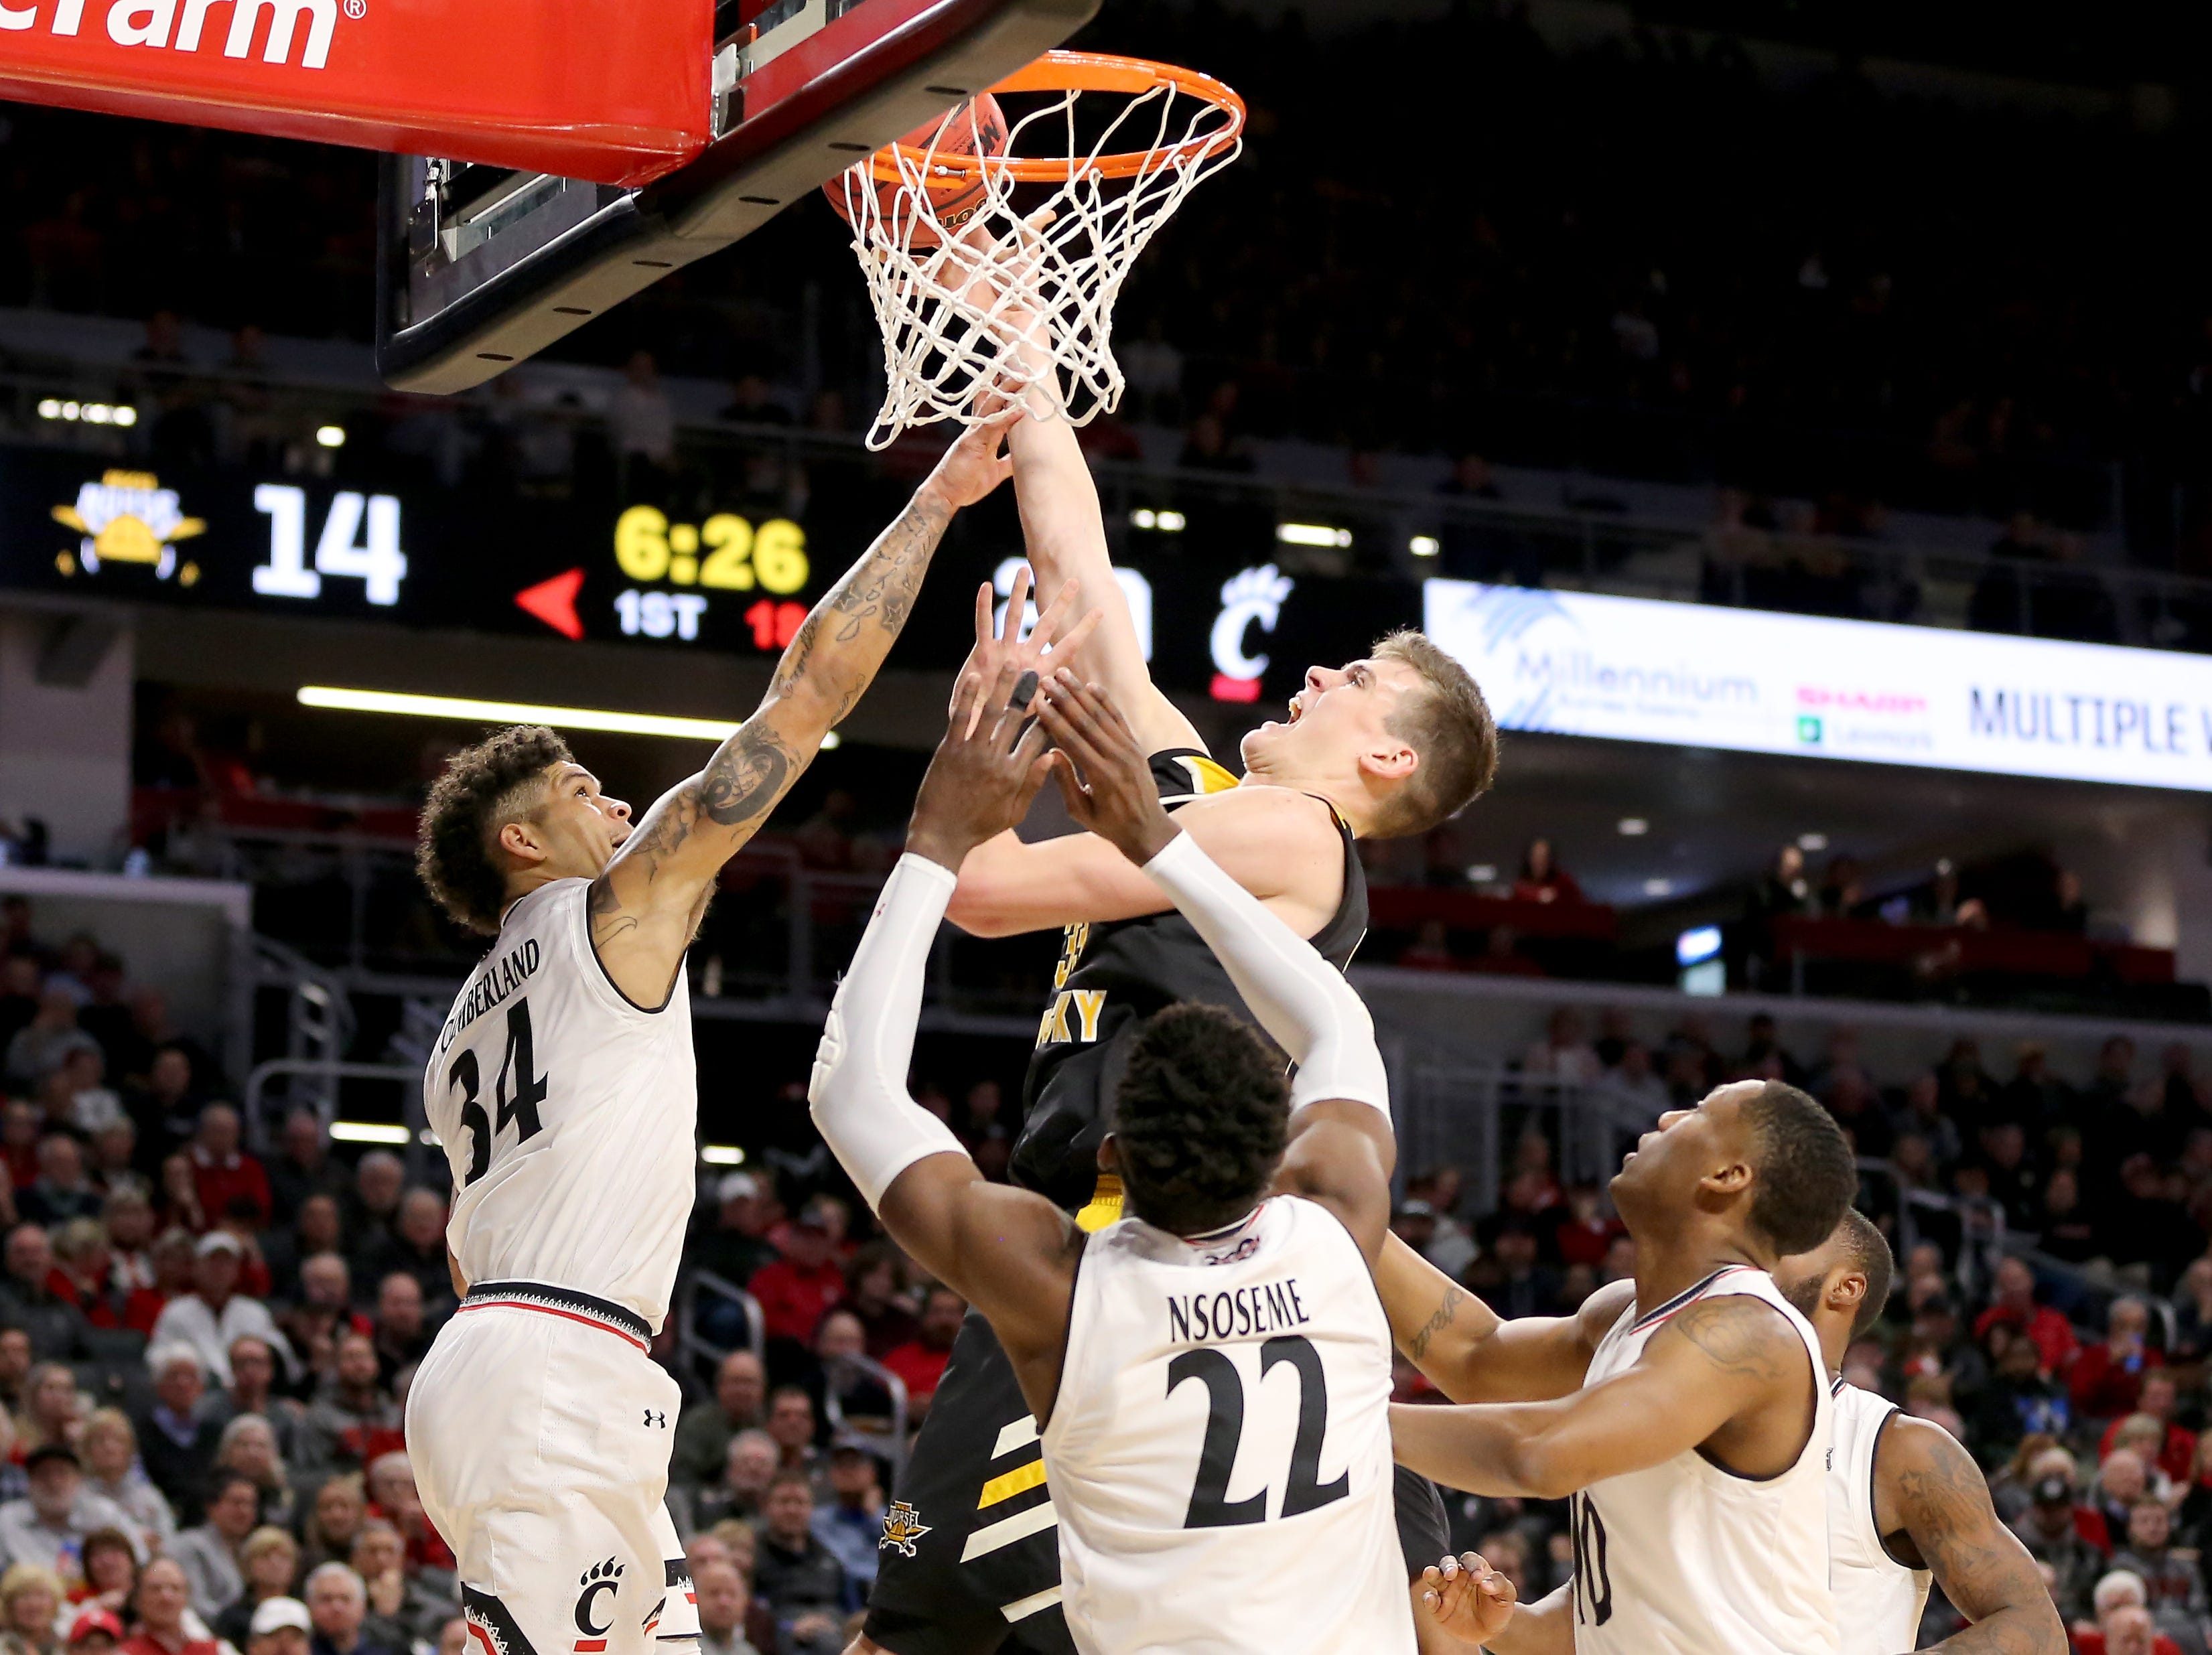 Northern Kentucky Norse center Chris Vogt (33) goes up for a shot in the first half of an NCAA college basketball game against the Cincinnati Bearcats, Tuesday, Dec. 4, 2018, at Fifth Third Arena in Cincinnati.